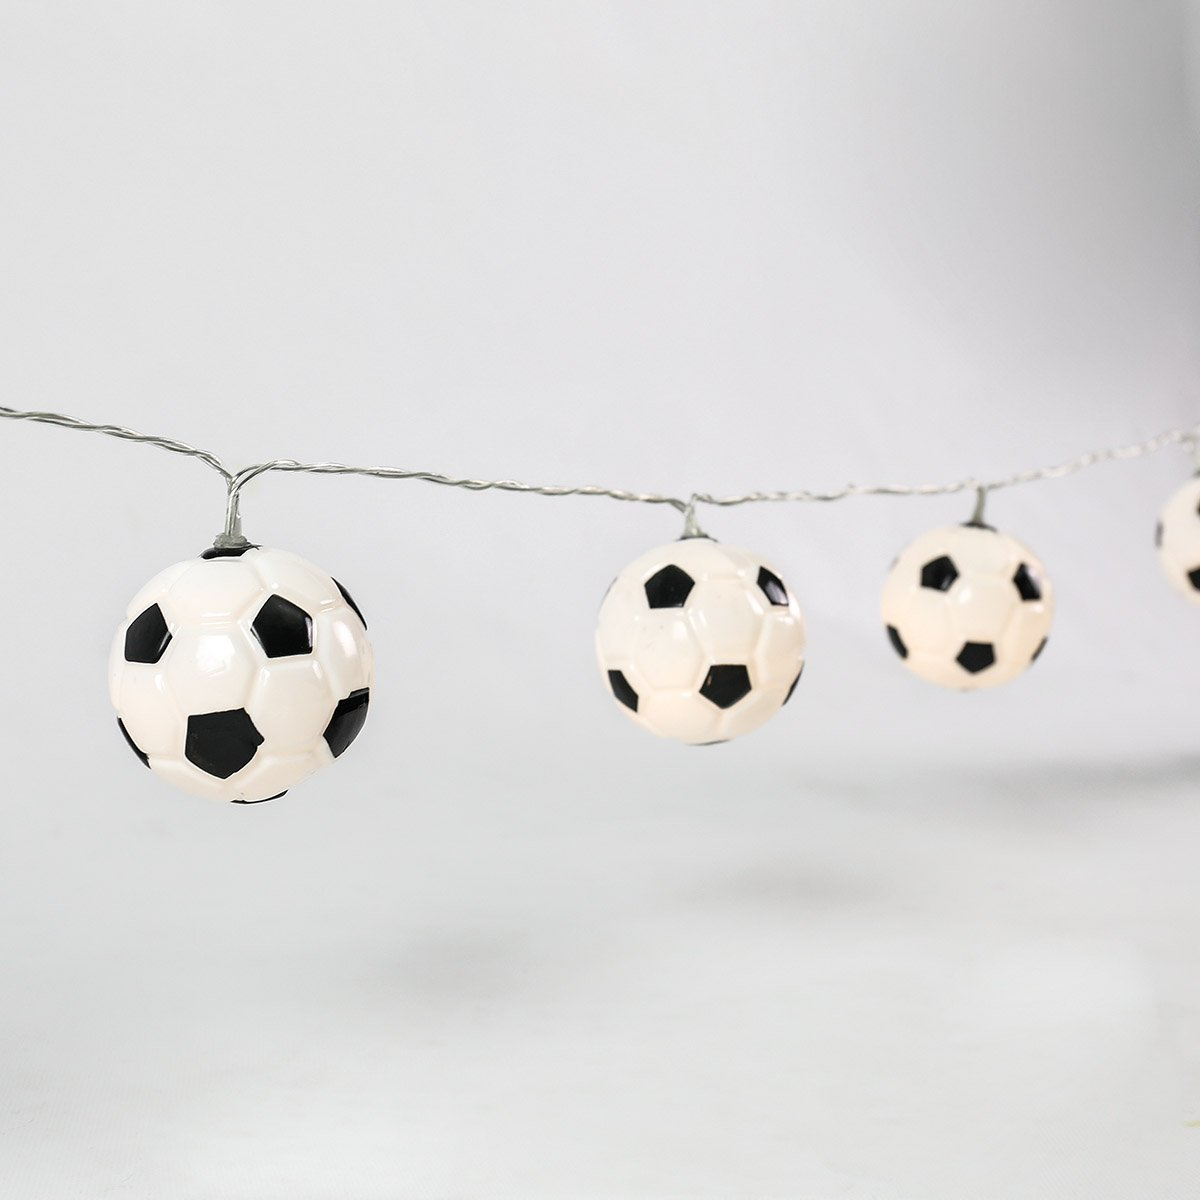 Football Fairy Lights - 10 LEDs - Warm White - Battery Operated - Timer by Festive Lights BL054